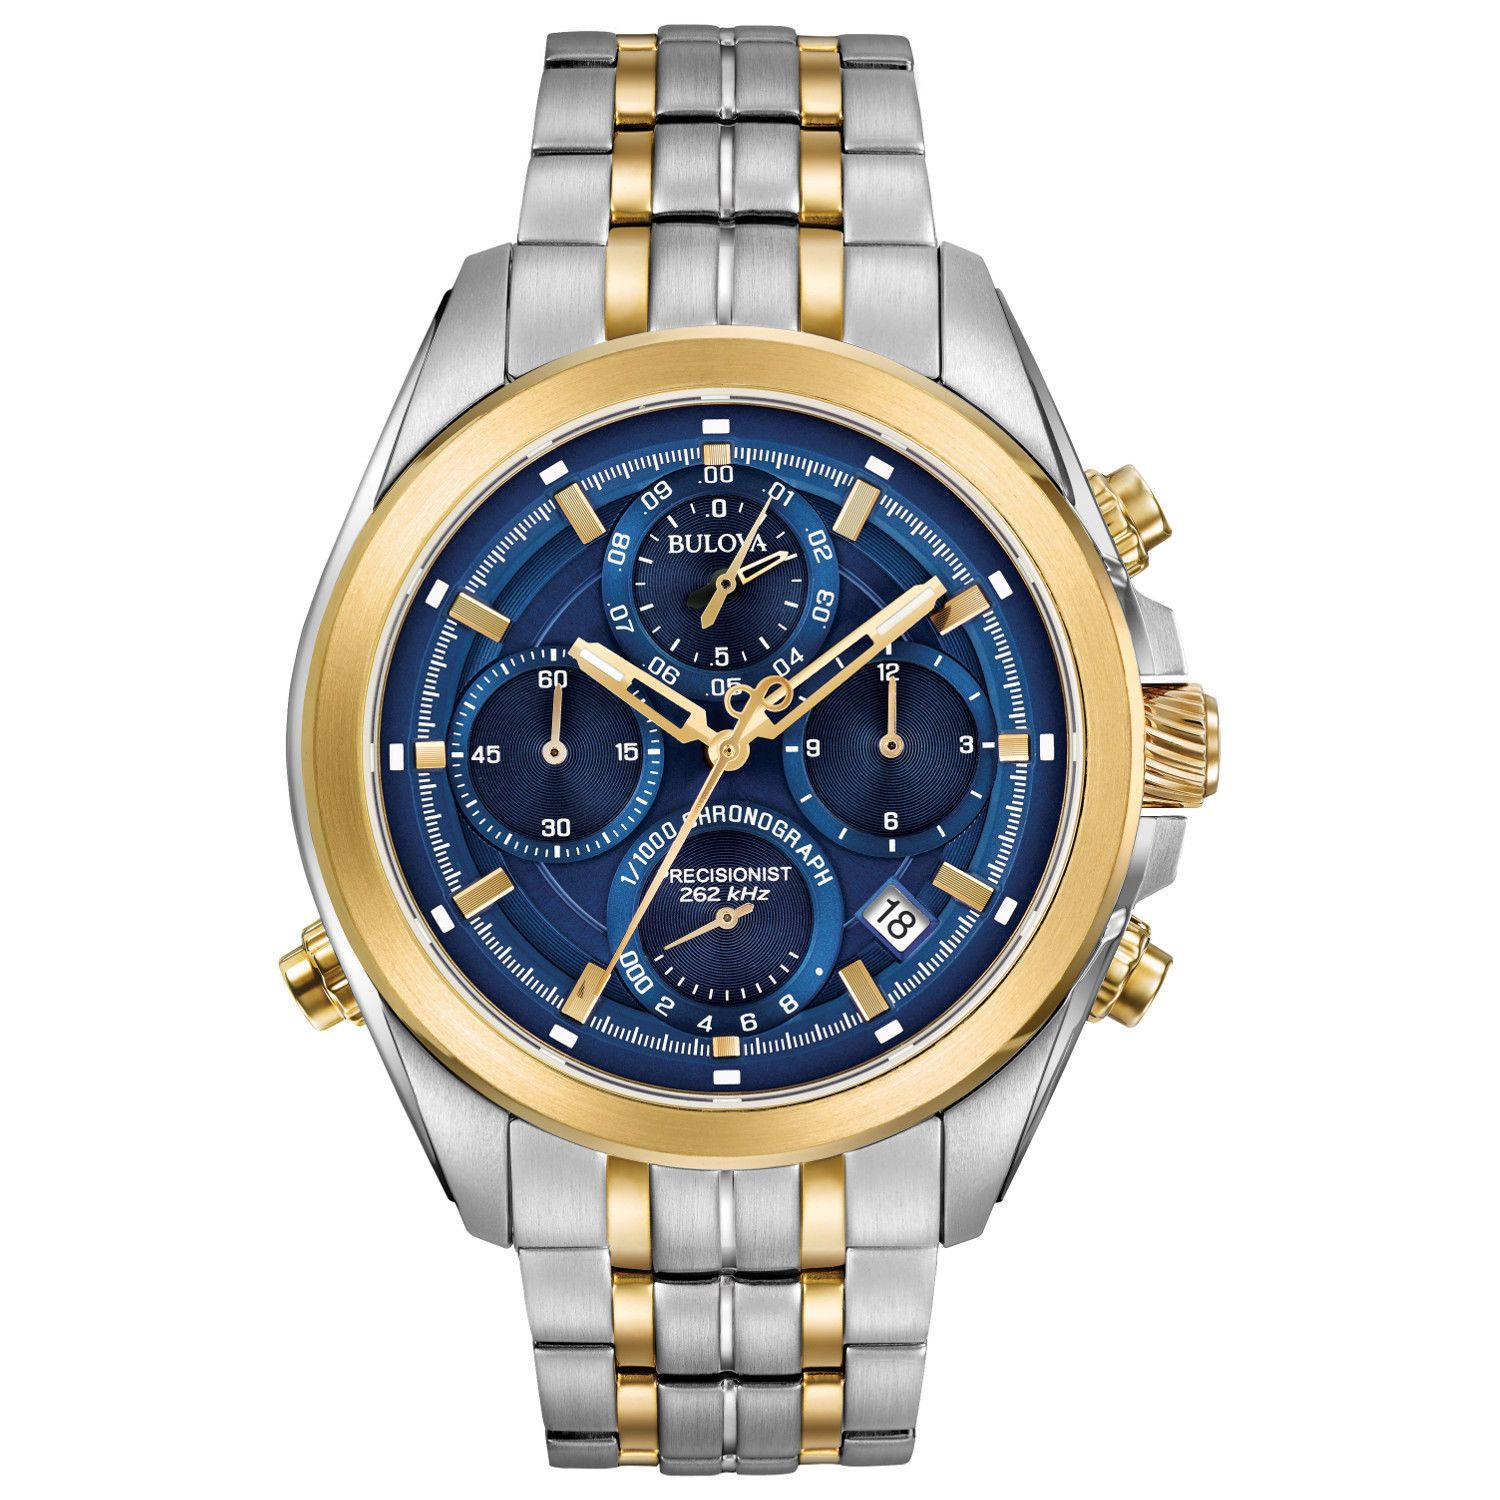 Bulova Men's Chronograph Two Tone Steel Watch - Precisionist Blue Dial